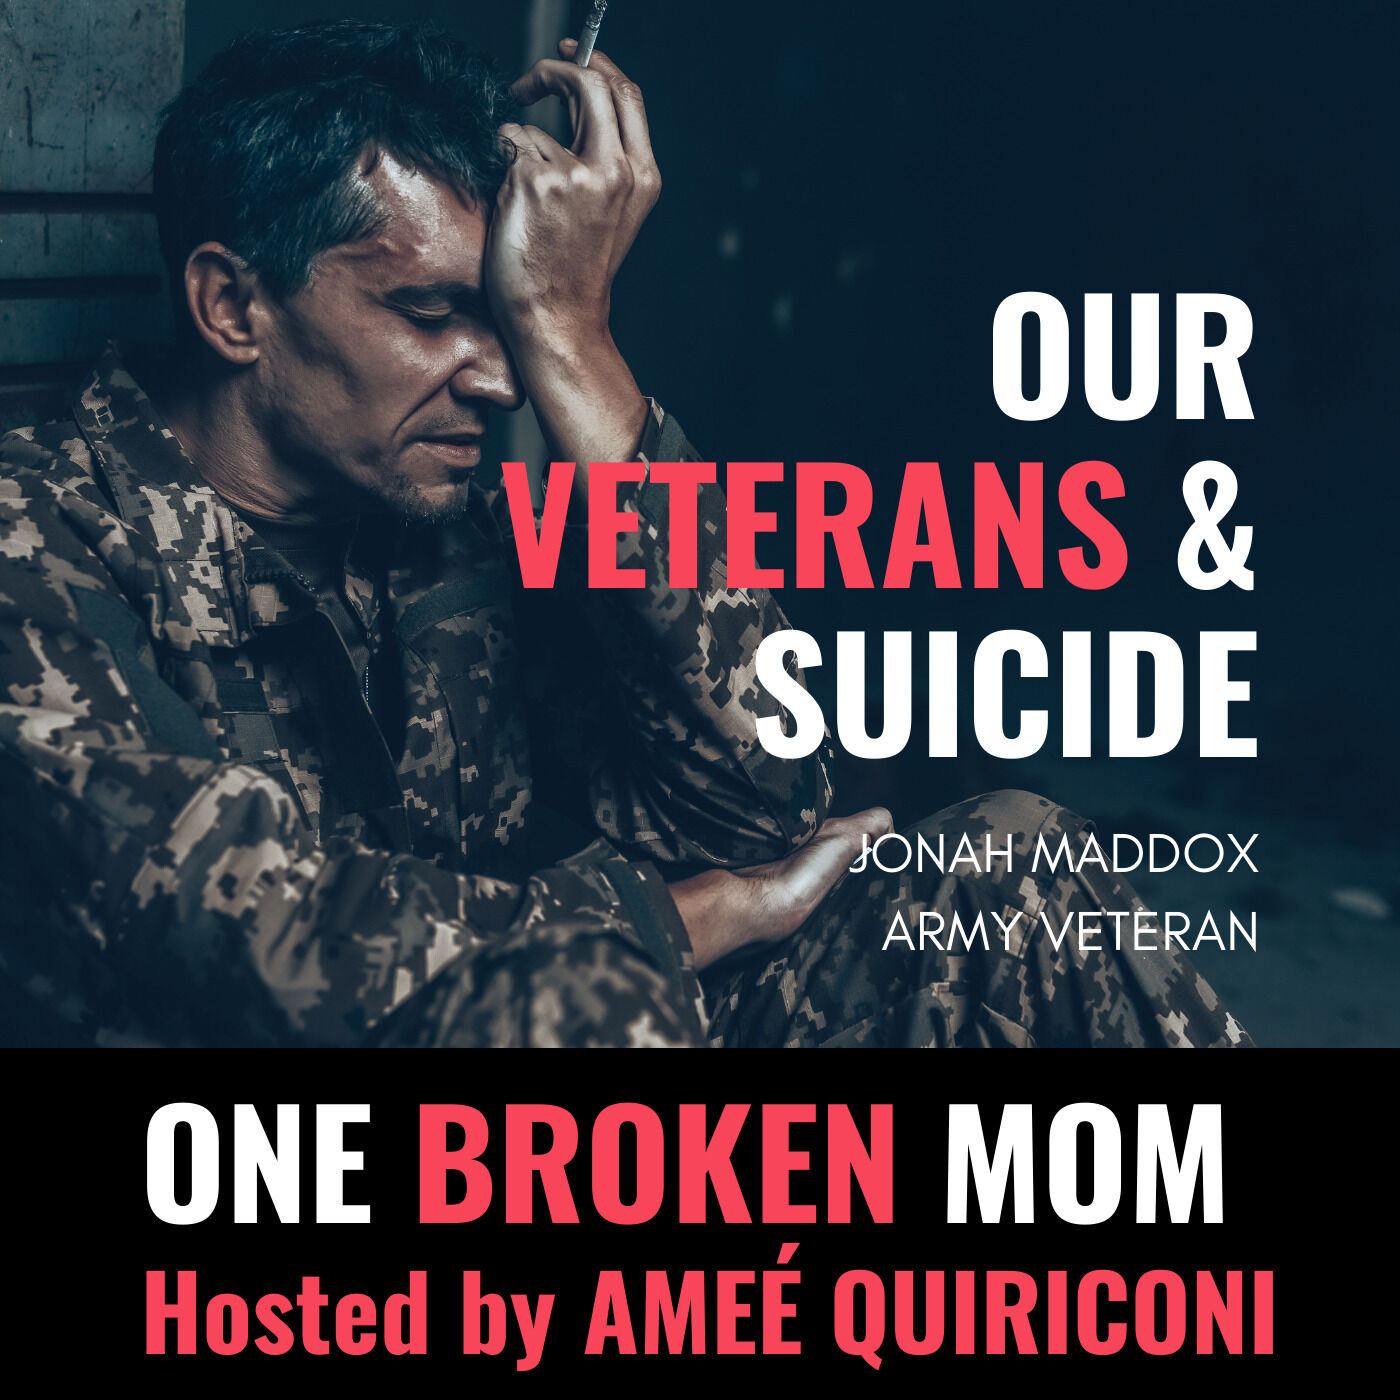 Our Veterans and Suicide with Jonah Maddox